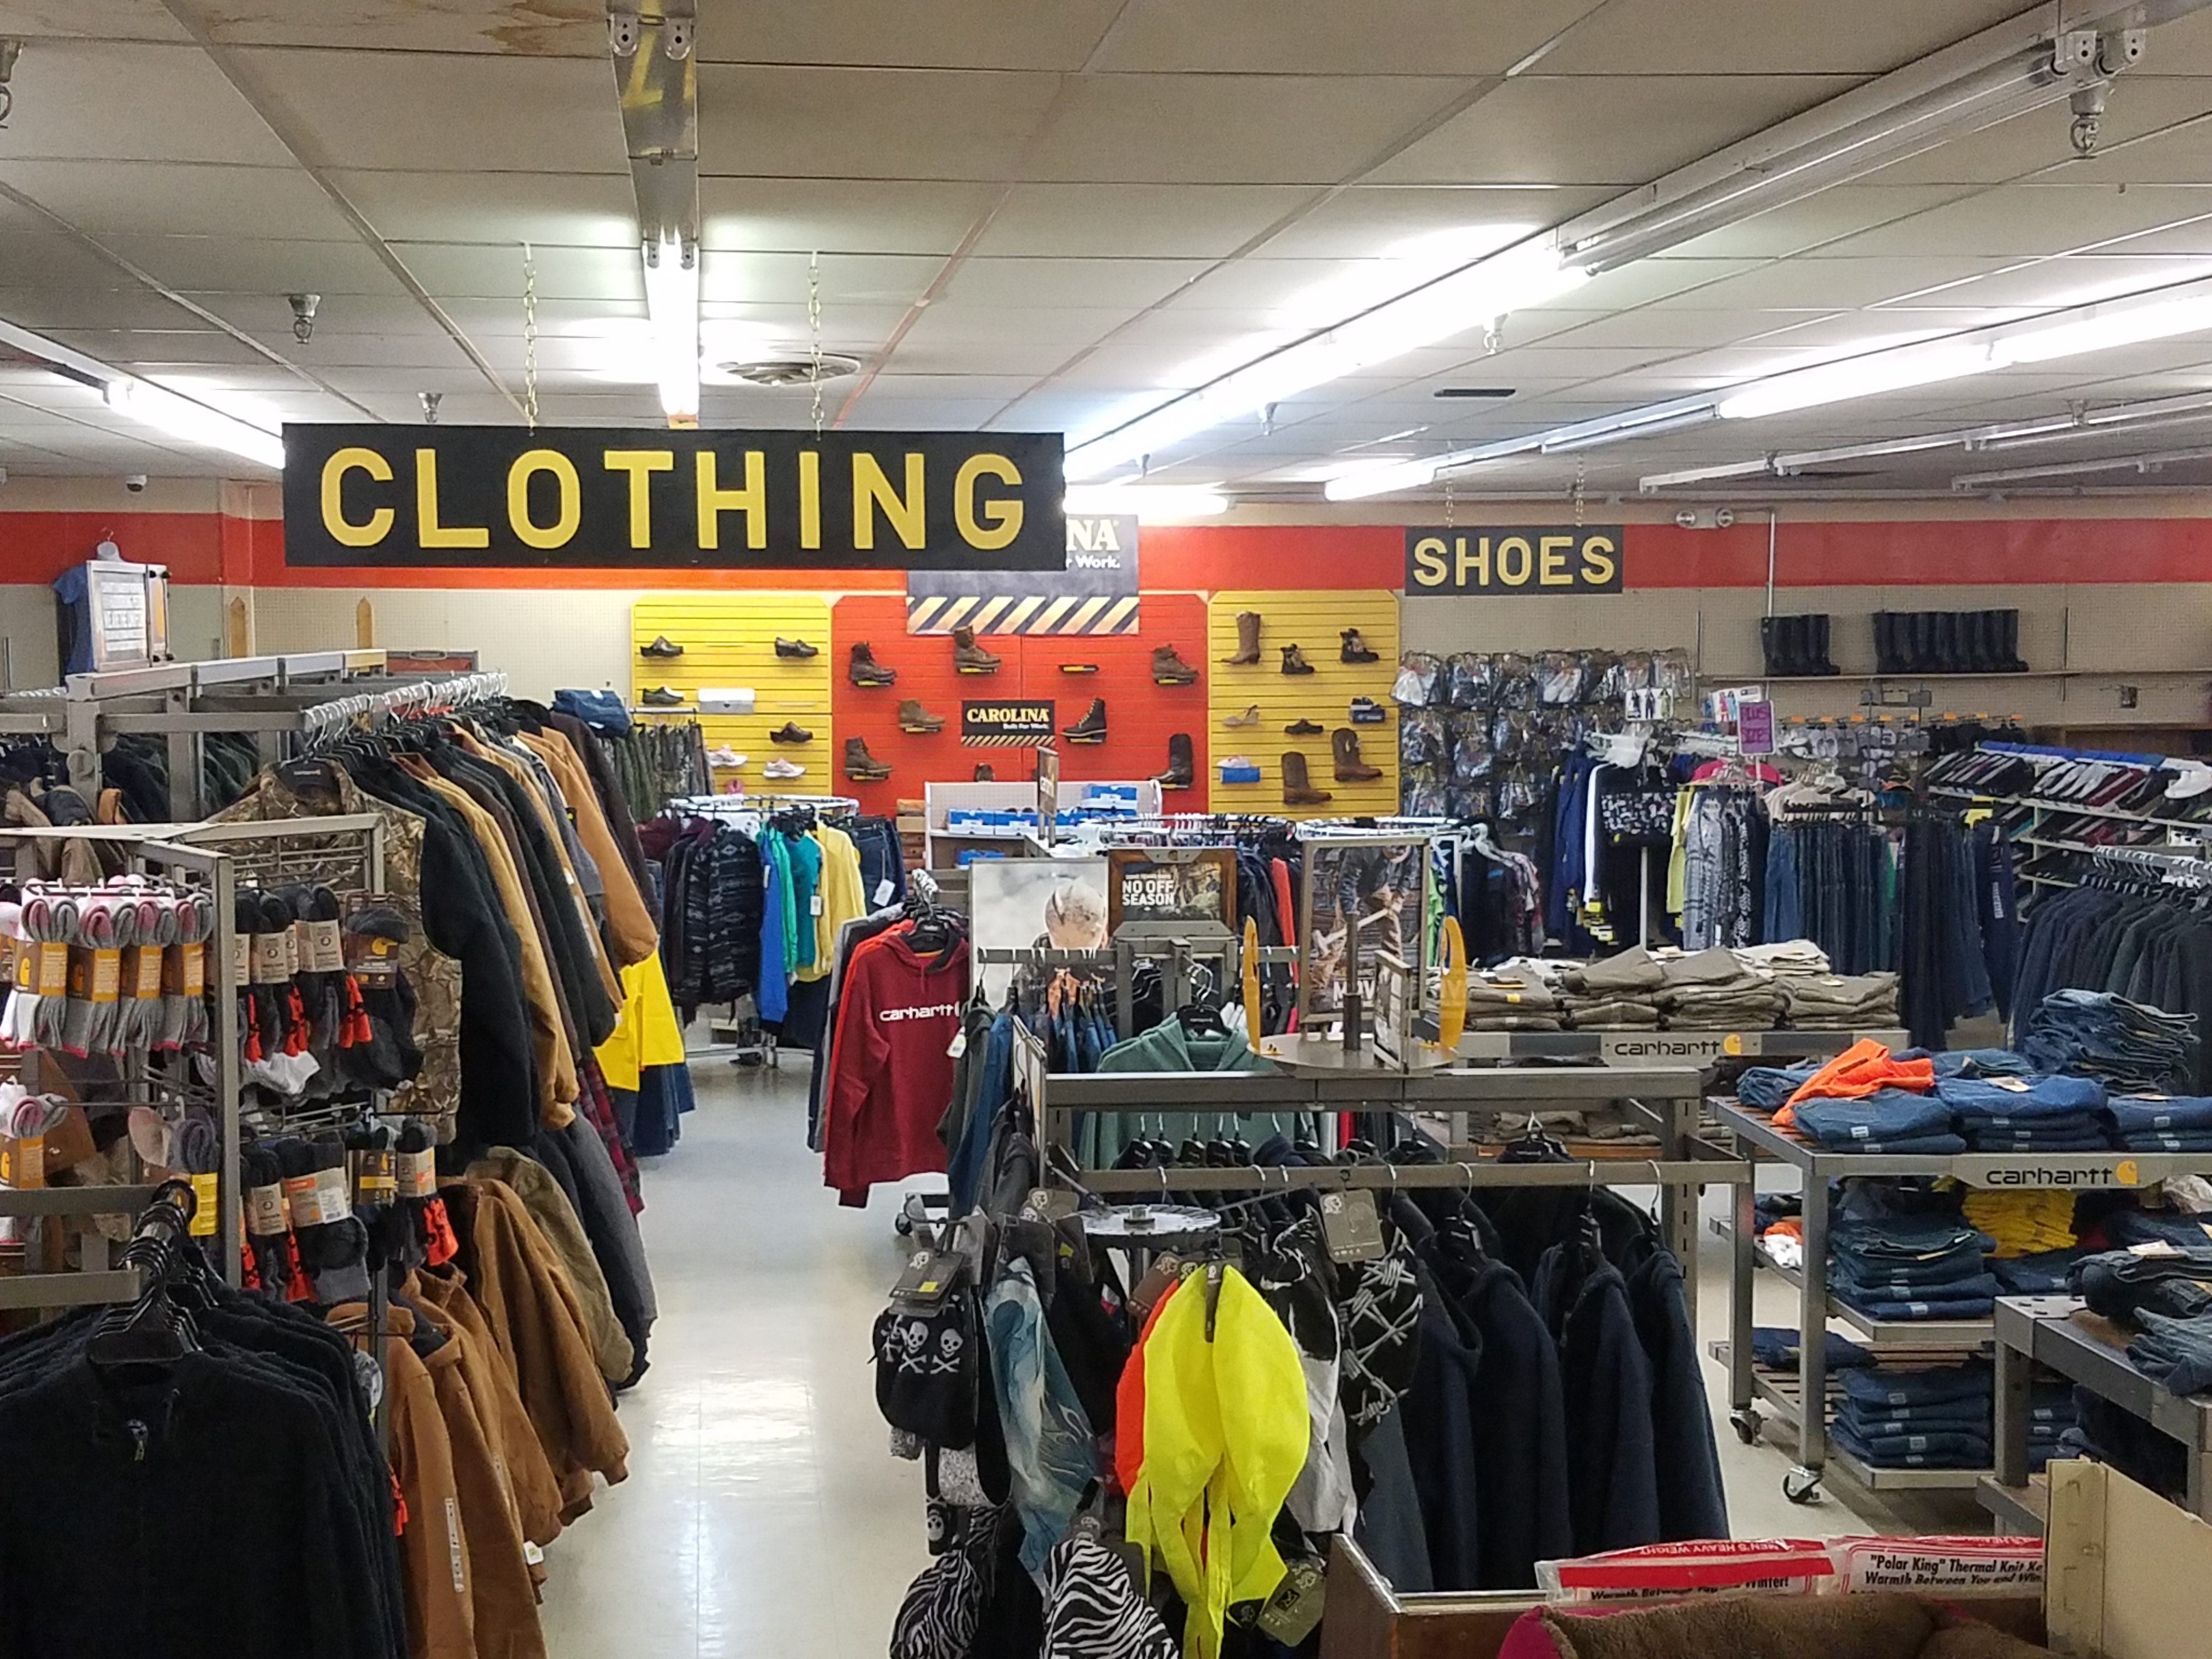 Workwear - Footwear - Home Goods - Decor - Toys & Games - Sporting Goods